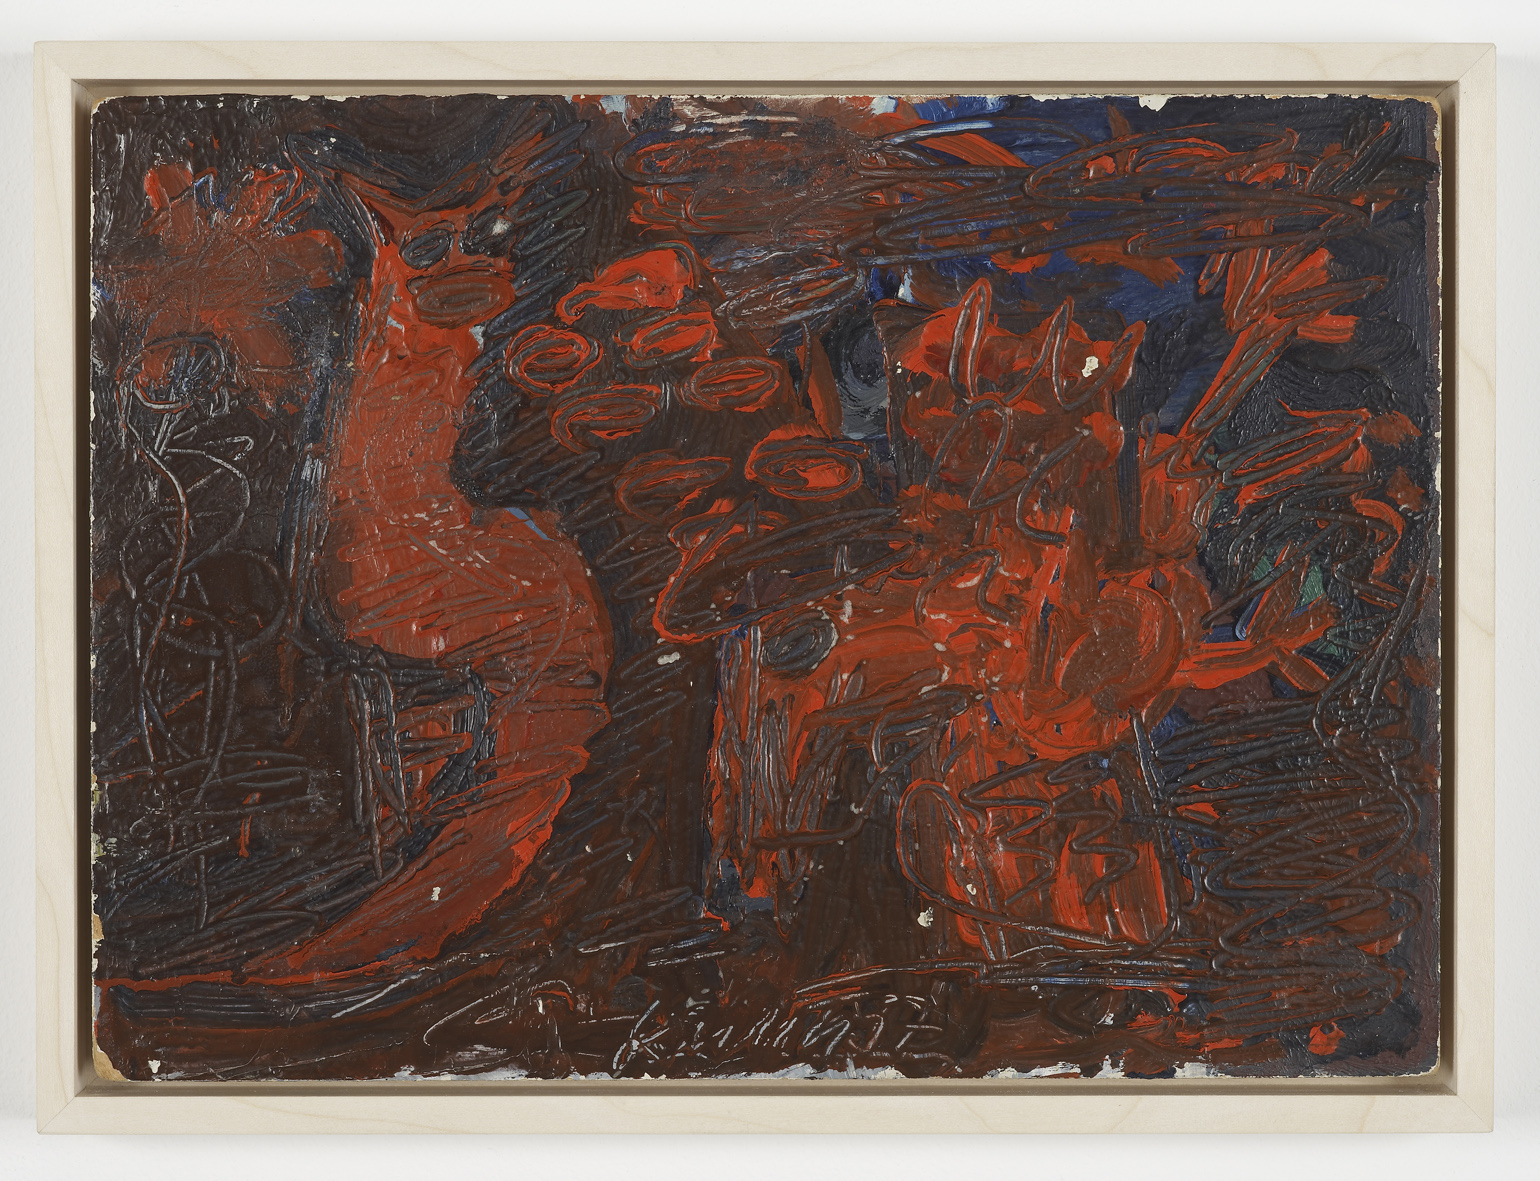 Untitled  1957  Oil on board   26.5 x 35.5 cm / 10.4 x 13.9 in